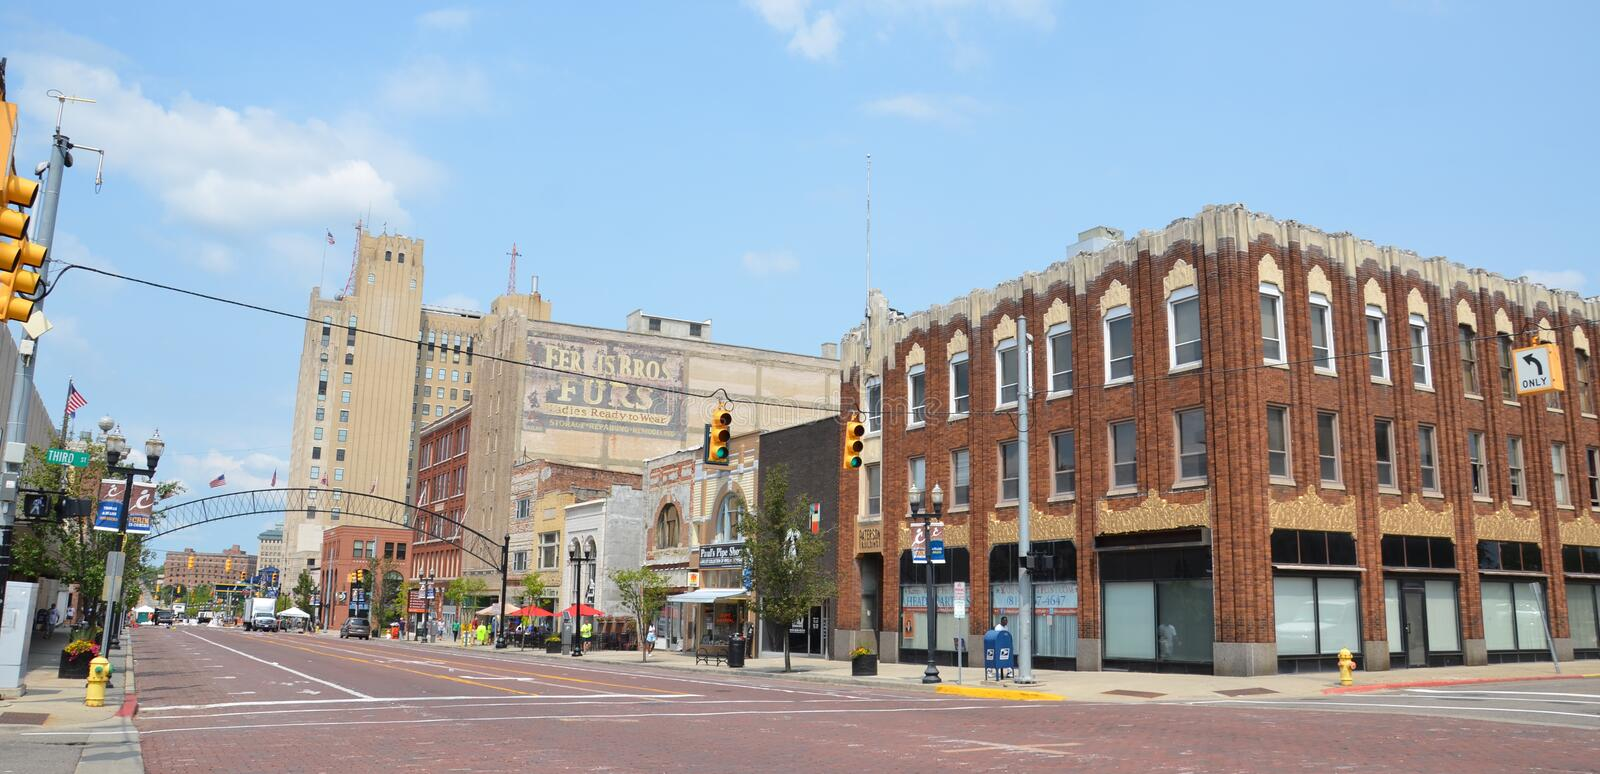 Downtown Flint, MI. FLINT, MI - AUGUST 22: Flint, MI, whose downtown is shown here on August 22, 2015, recently elected Dr. Karen Weaver as their first female royalty free stock photography